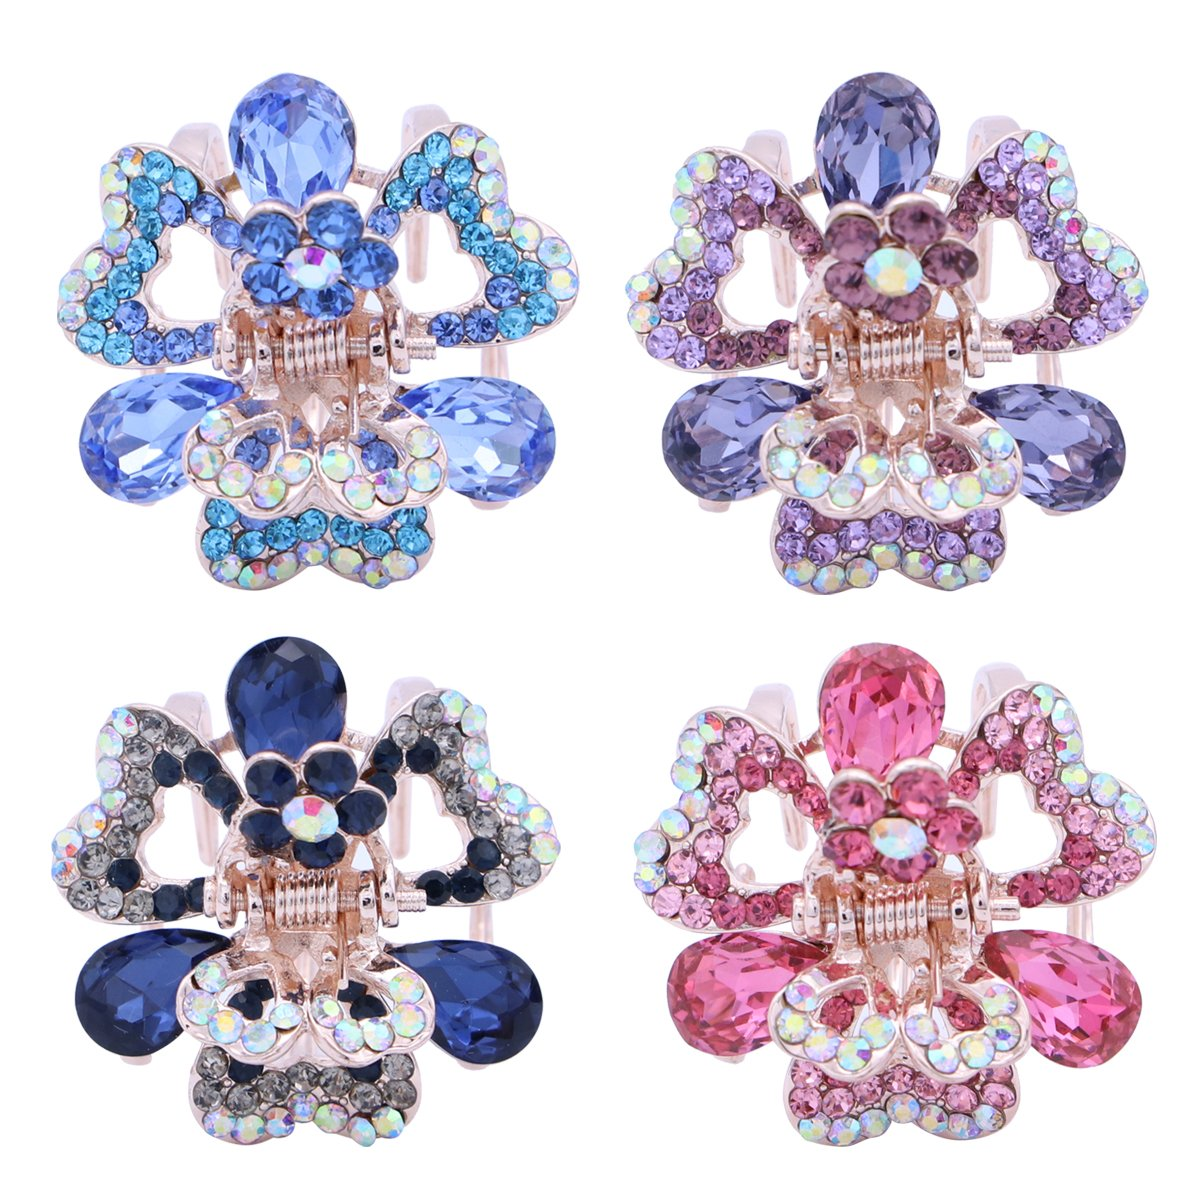 FRCOLOR 4pcs Crystal Metal Jaw Claw Hair Clip Small Butterfly Design Barrettes for Women Girl (Purple, Pink, Blue and Dark Blue)